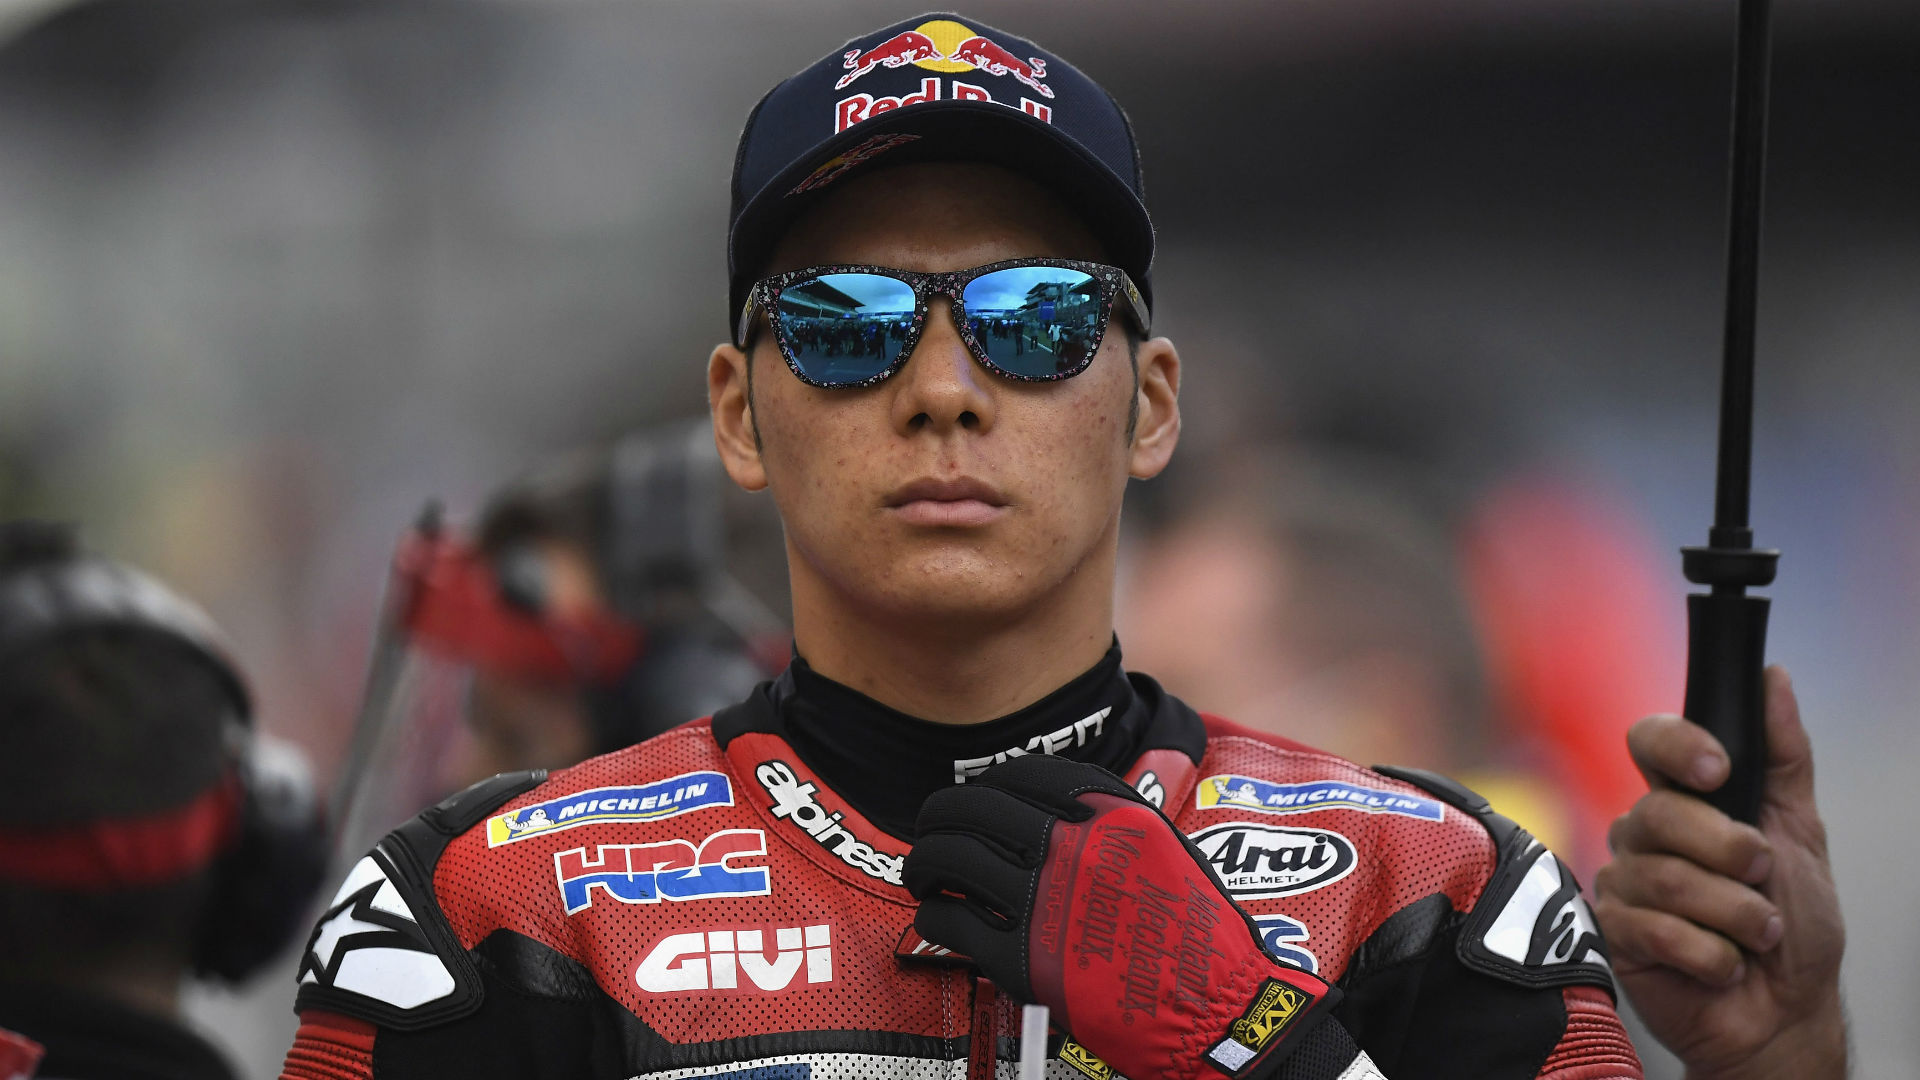 Nakagami to stay with LCR as part of multi-year deal with Honda